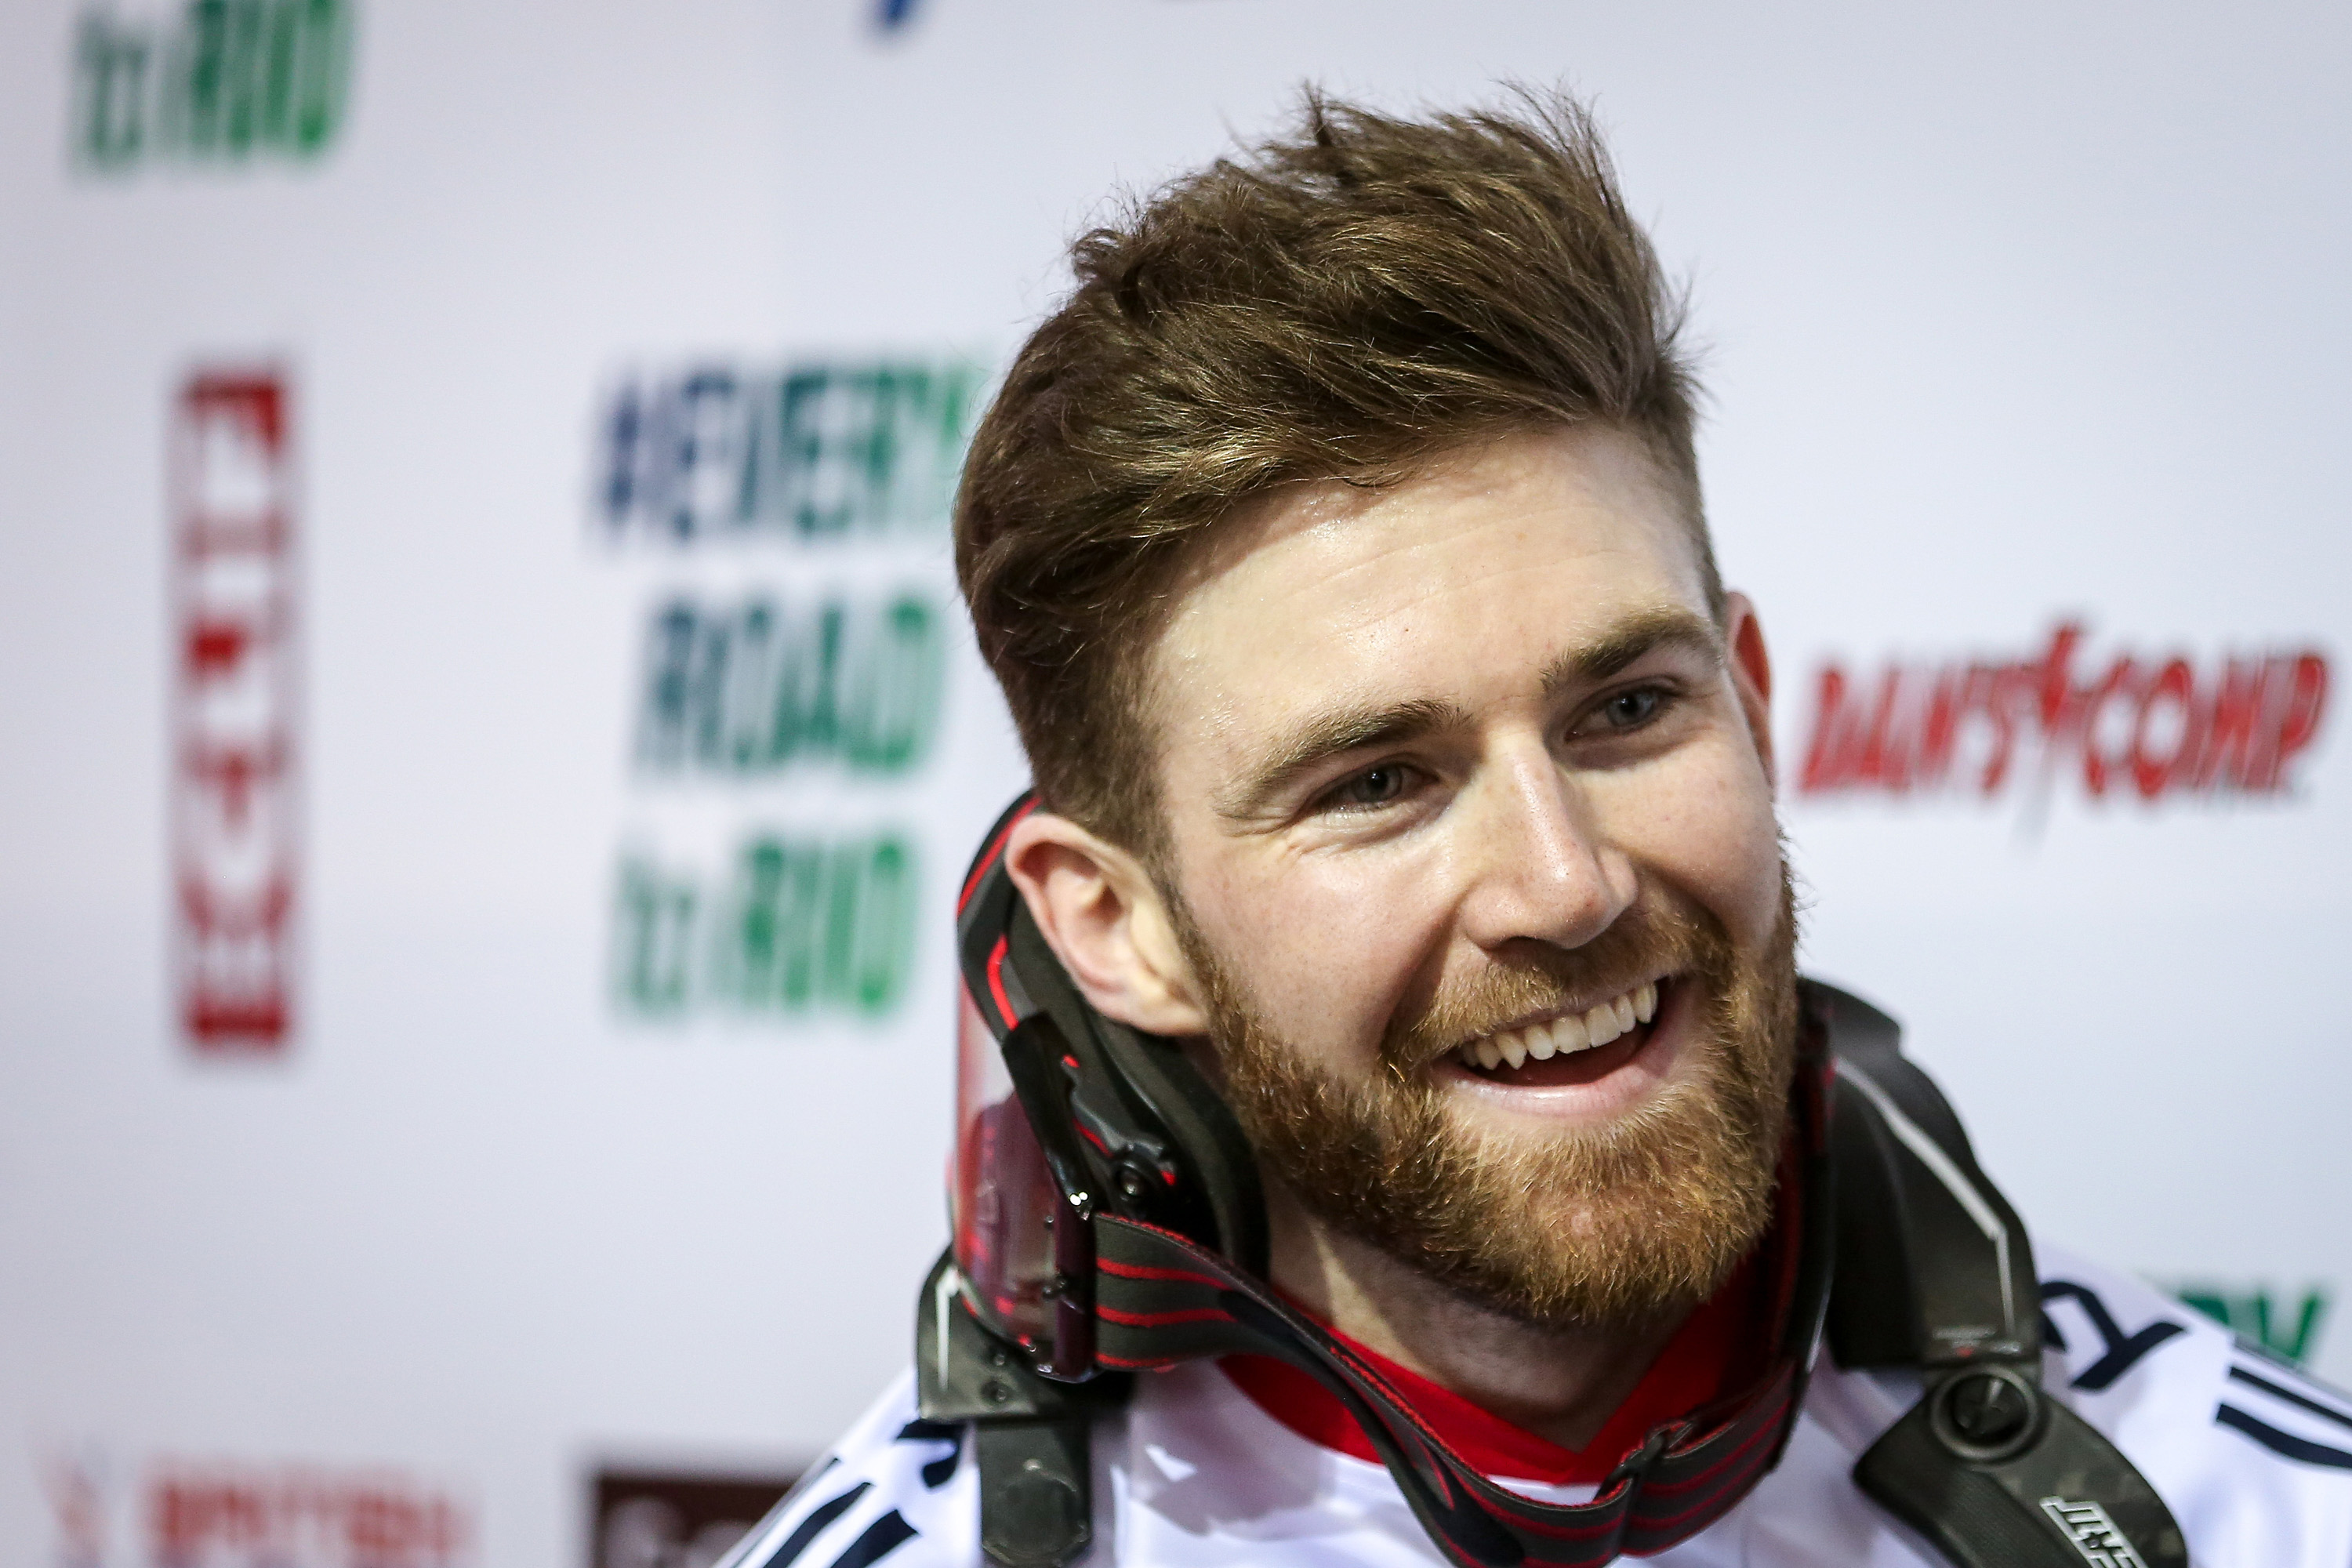 Liam Phillips brought it home for Great Britain, winning the opening round of the 2015 UCI BMX Supercross World Cup series at Manchester's National Cycling ... - 5m3a9007